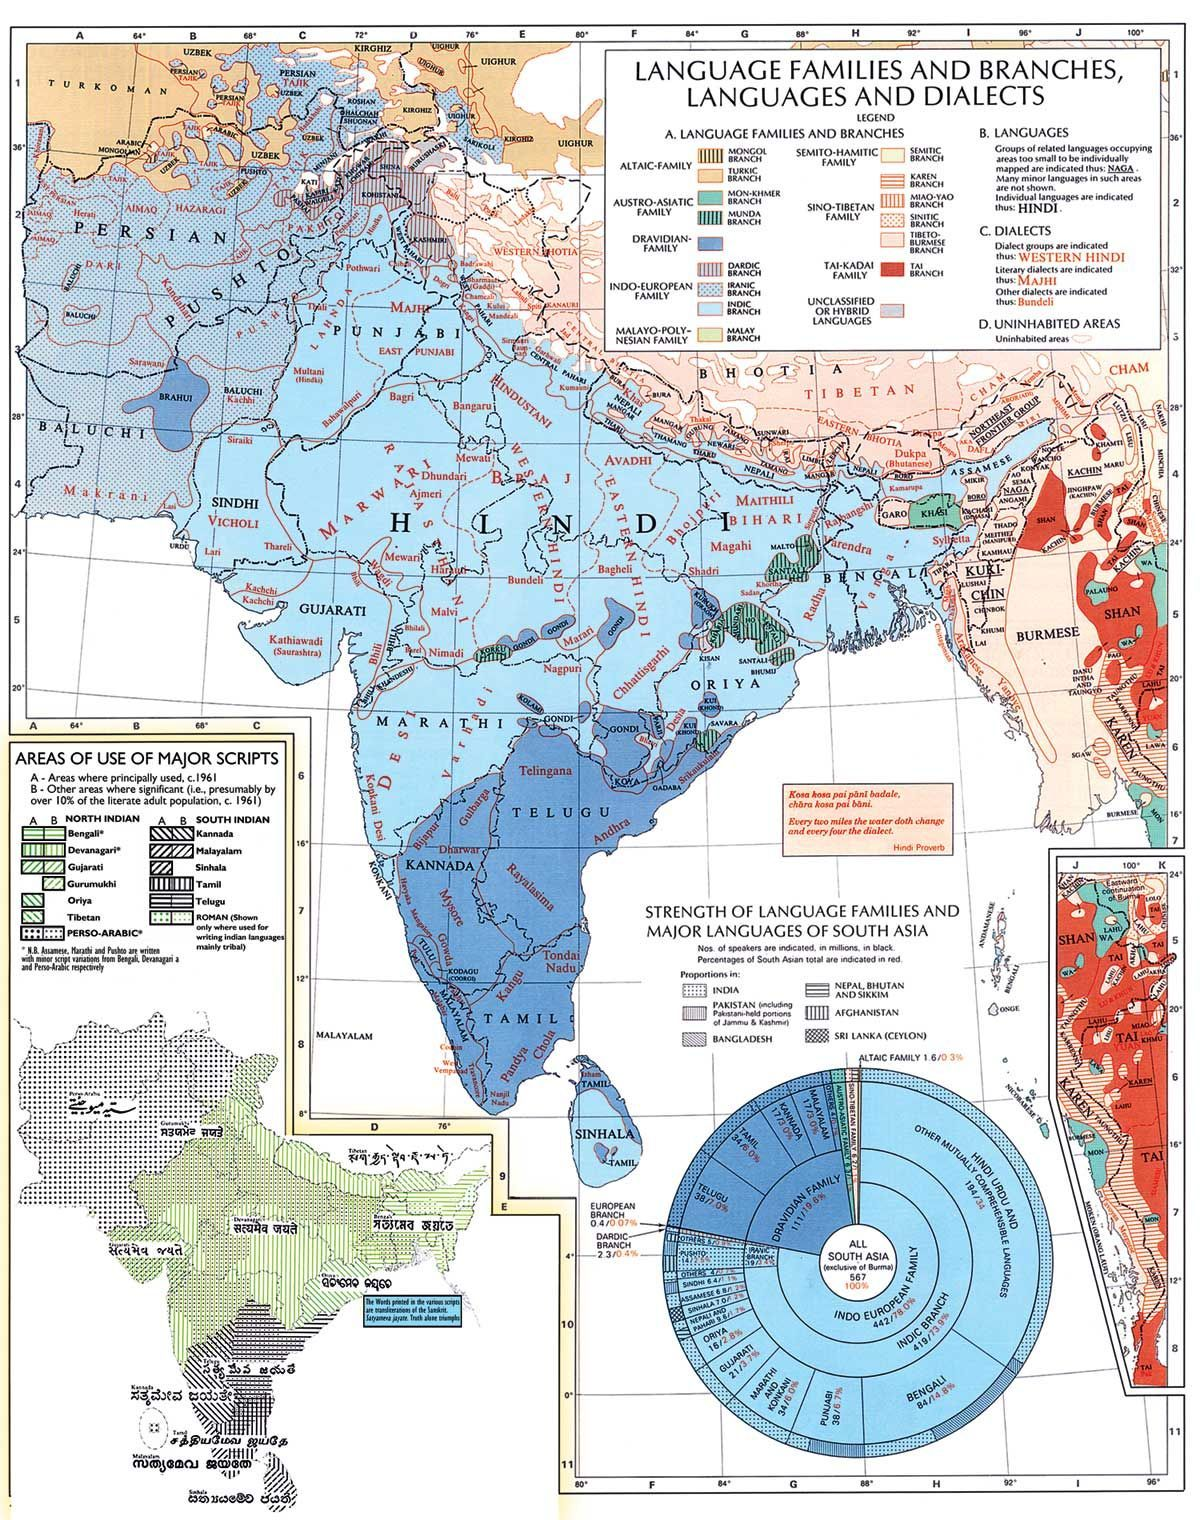 D507c9d7a7b75657f1a3b07eca6d998cg 1 2001 520 pixelov maps language families and branches languages and dialects infographic map of india subcontinent geography awareness week gumiabroncs Images